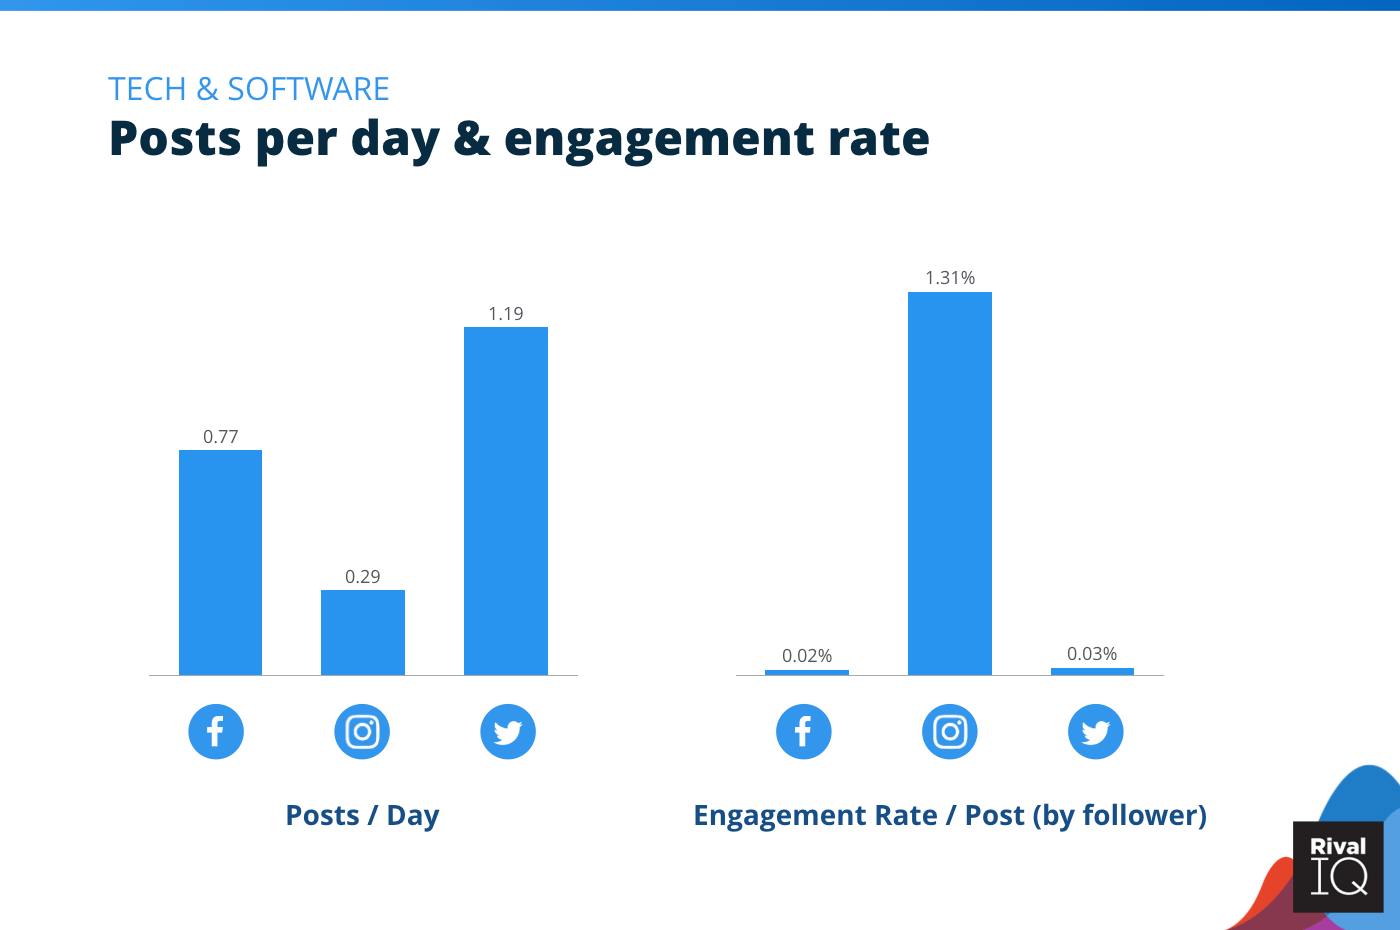 Chart of Posts per day and engagement rate per post across all channels, Tech & Software